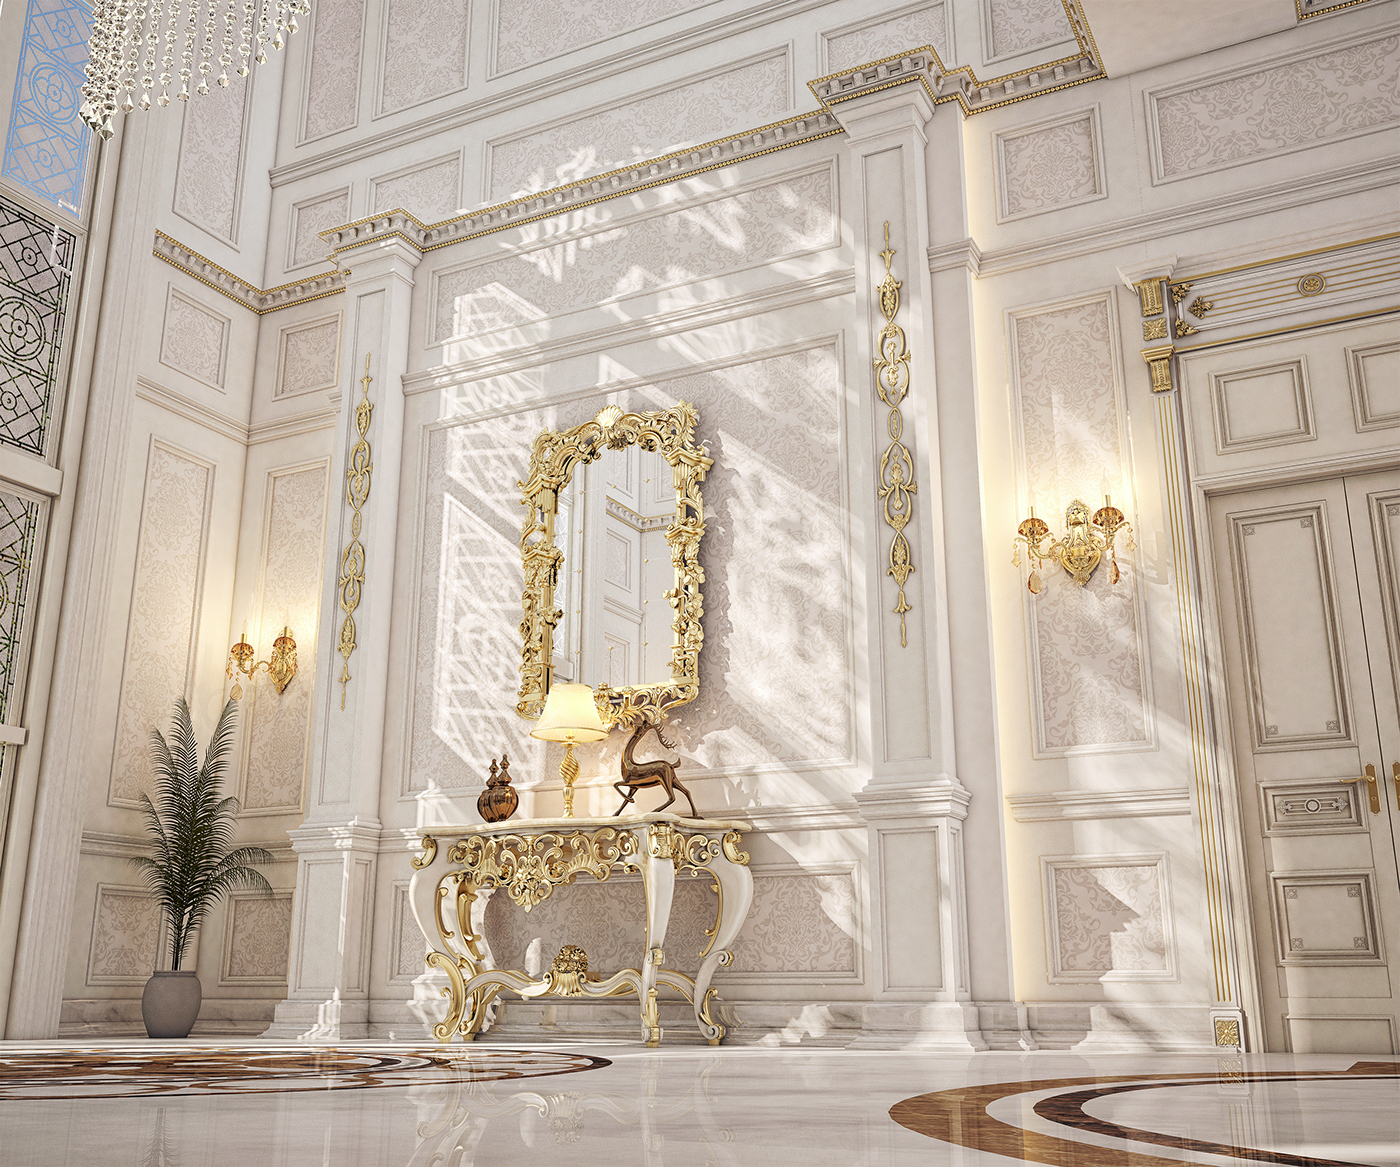 Home Design Qatar Part - 46: Design Interior Design Interior Decoration Dream Home Private Villa Palace Design  Qatar Luxury Classic Design Maison Elegant Home Palace Exterior Living ...